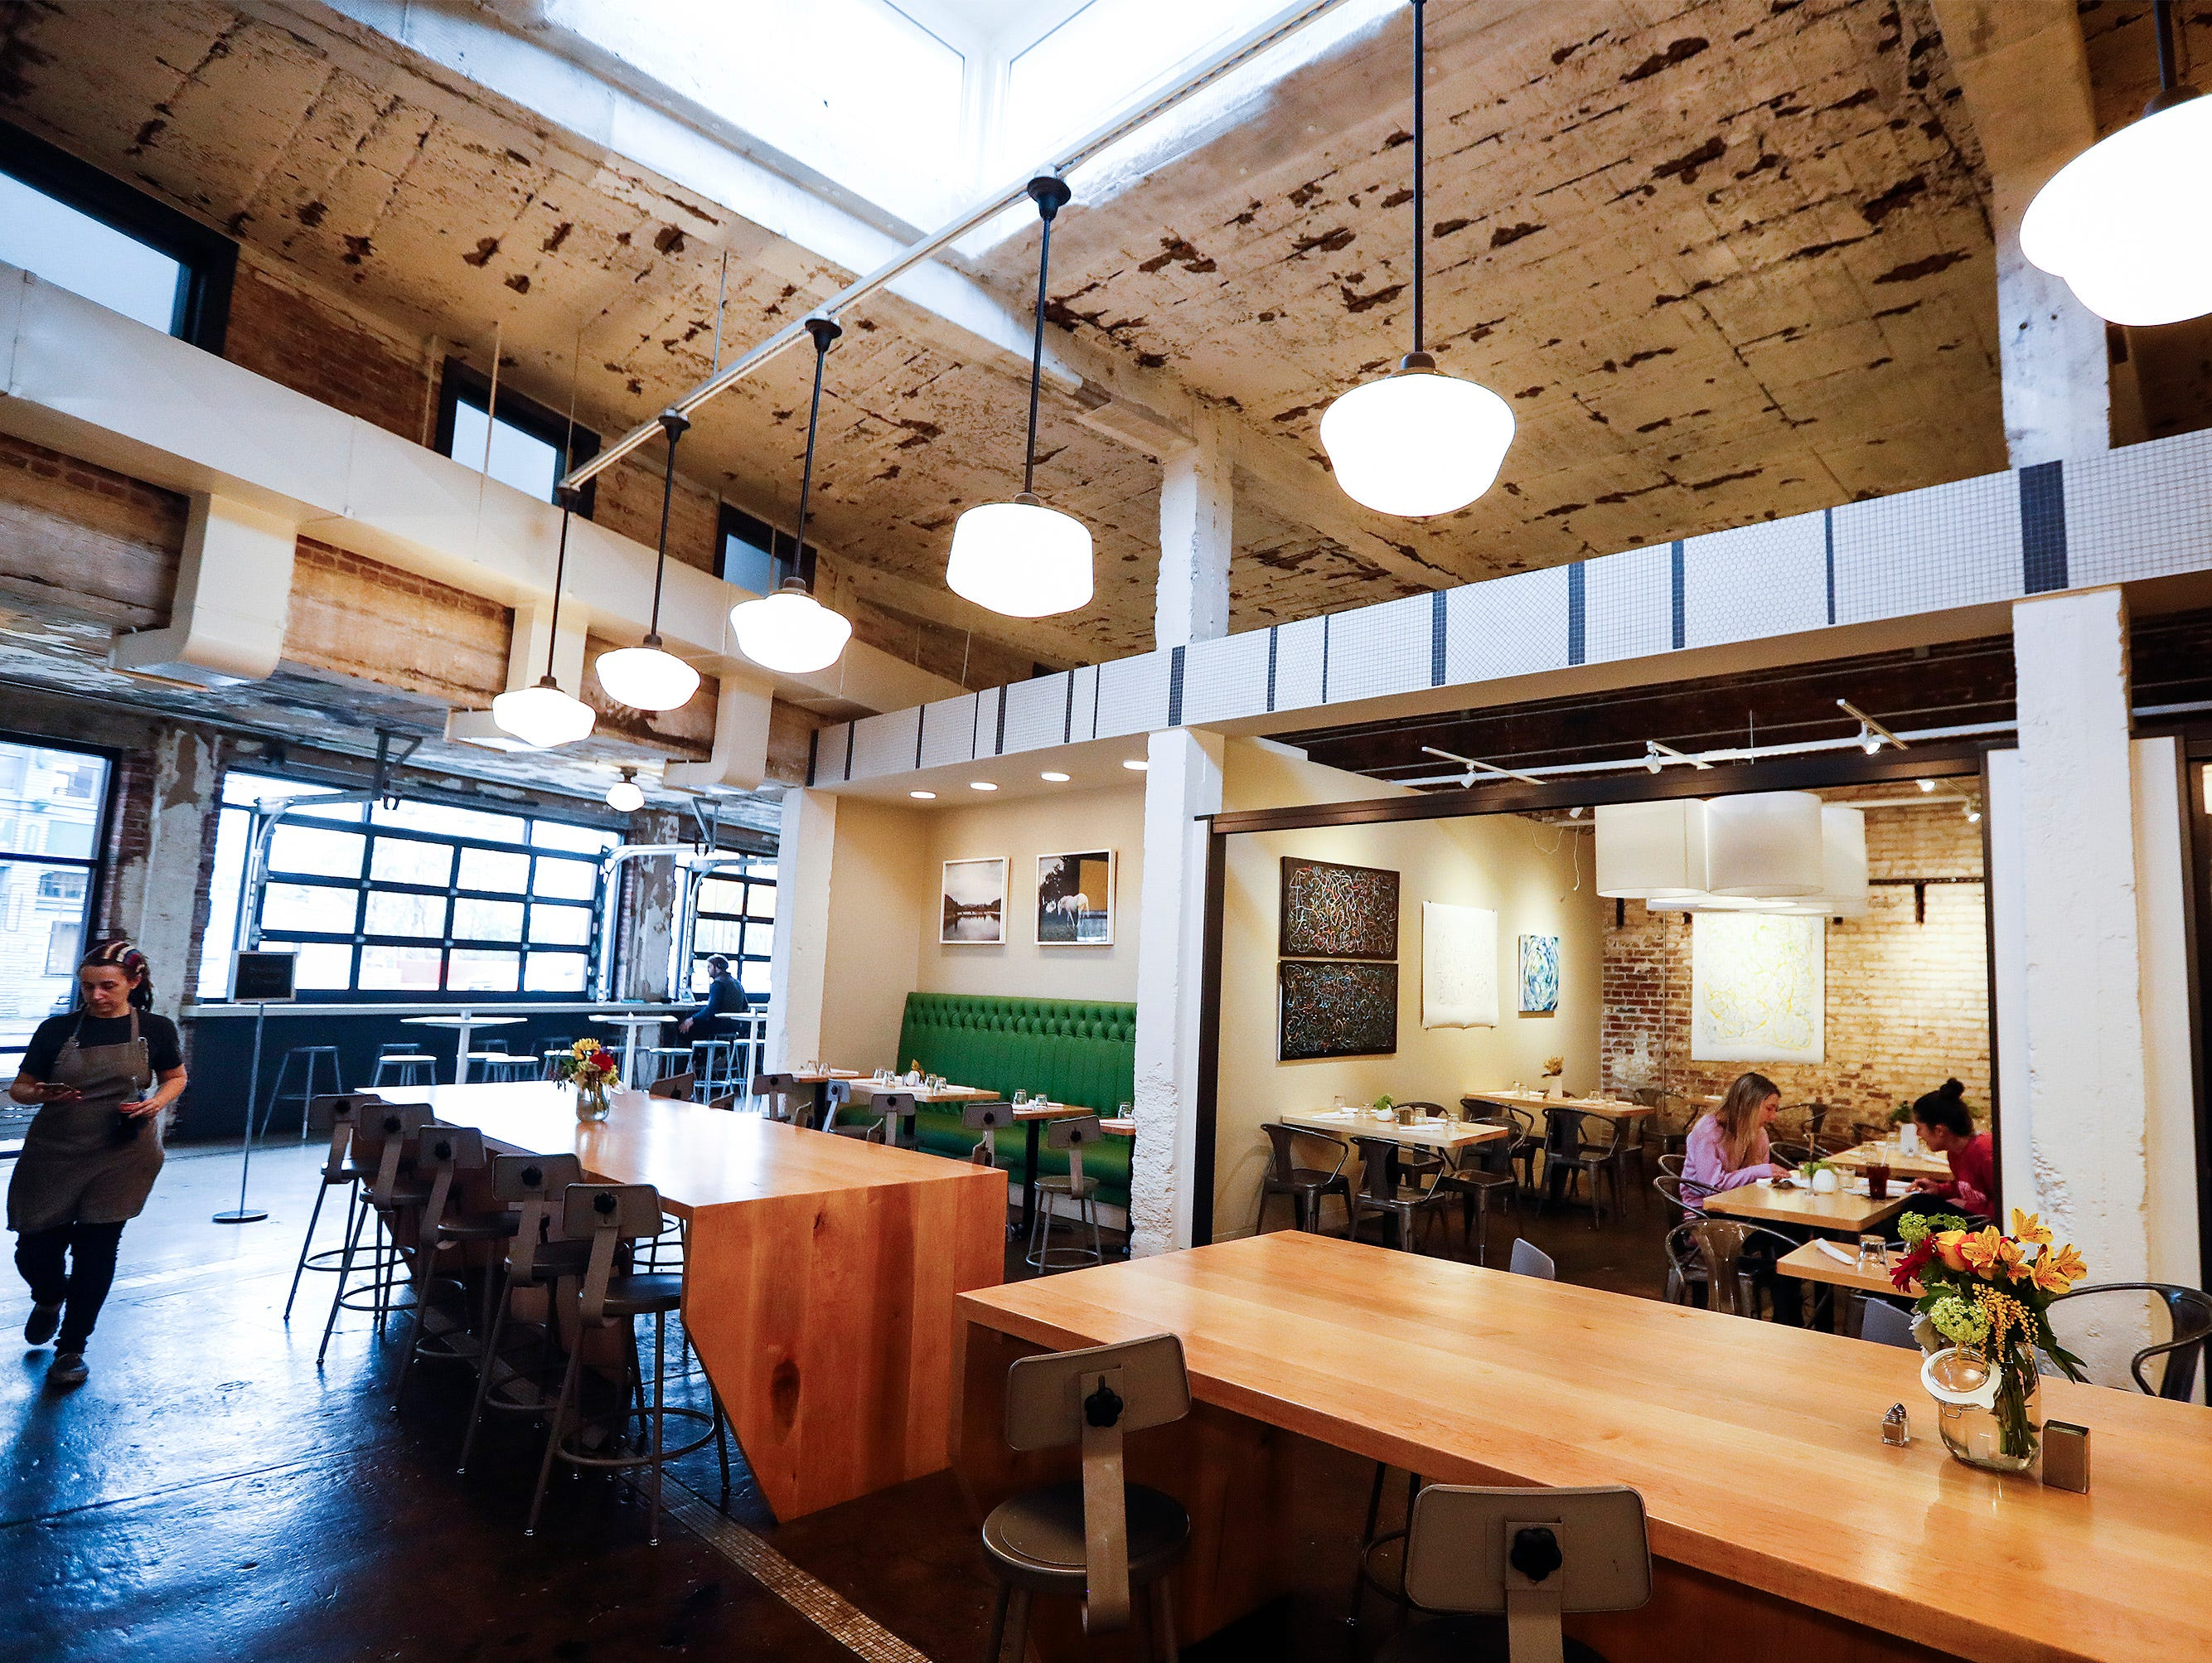 Edge Alley is a concept restaurant that serves breakfast, lunch, dinner in the part coffee shop and art gallery.